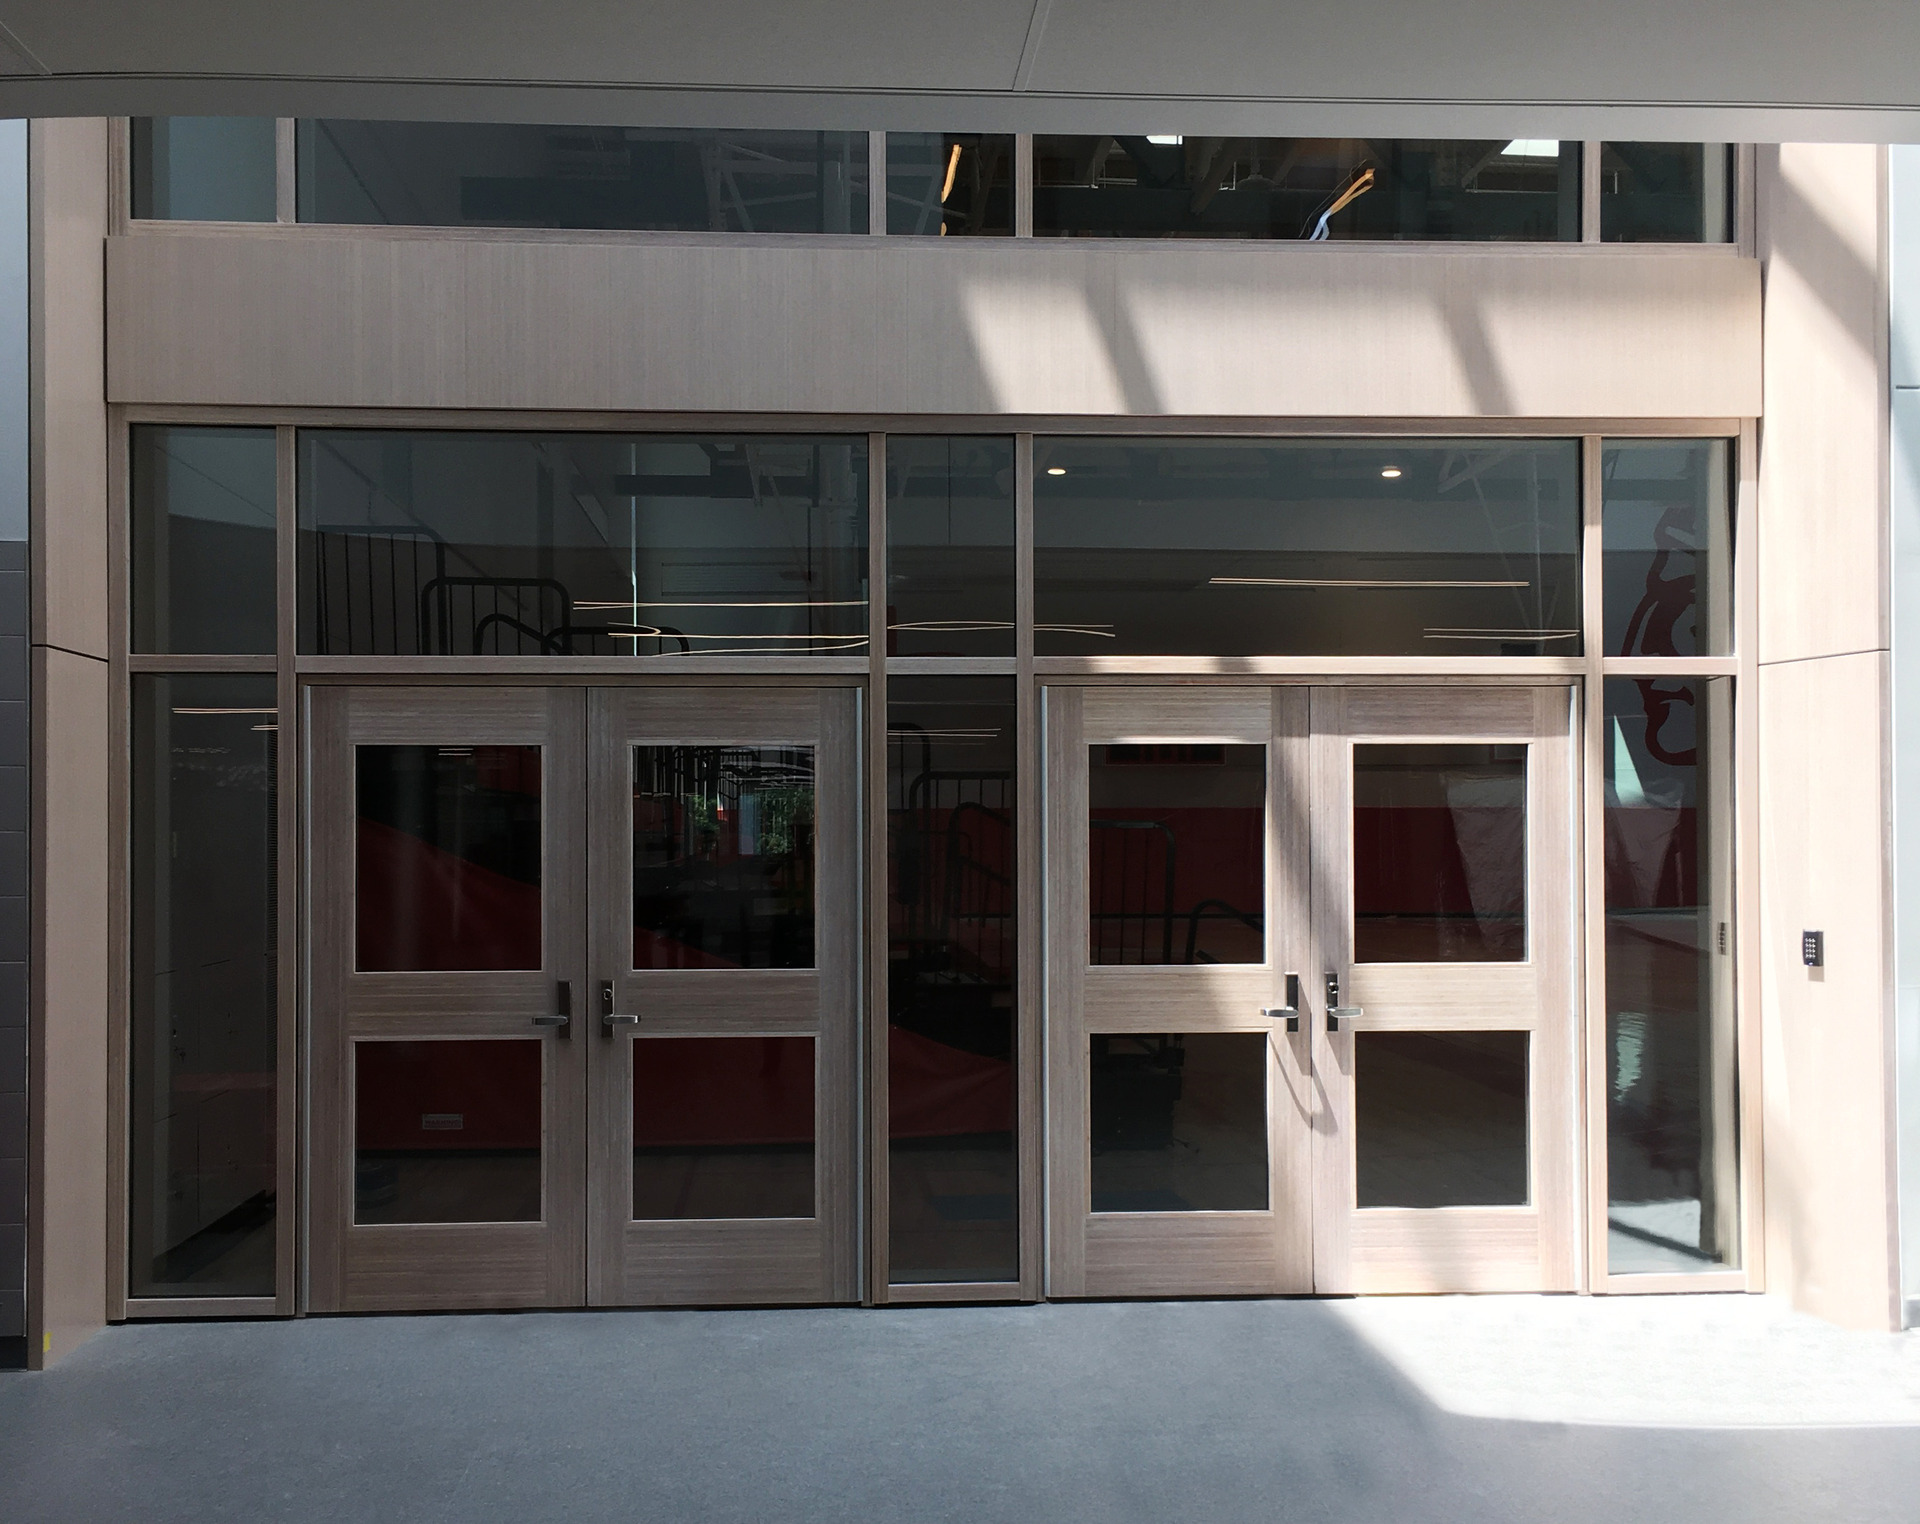 Featured here at Saugus Middle/High School is the combination of Lamboo® Vue™ Series - Curtain Wall System and Lamboo® Vue™ Series - Commercial Doors.